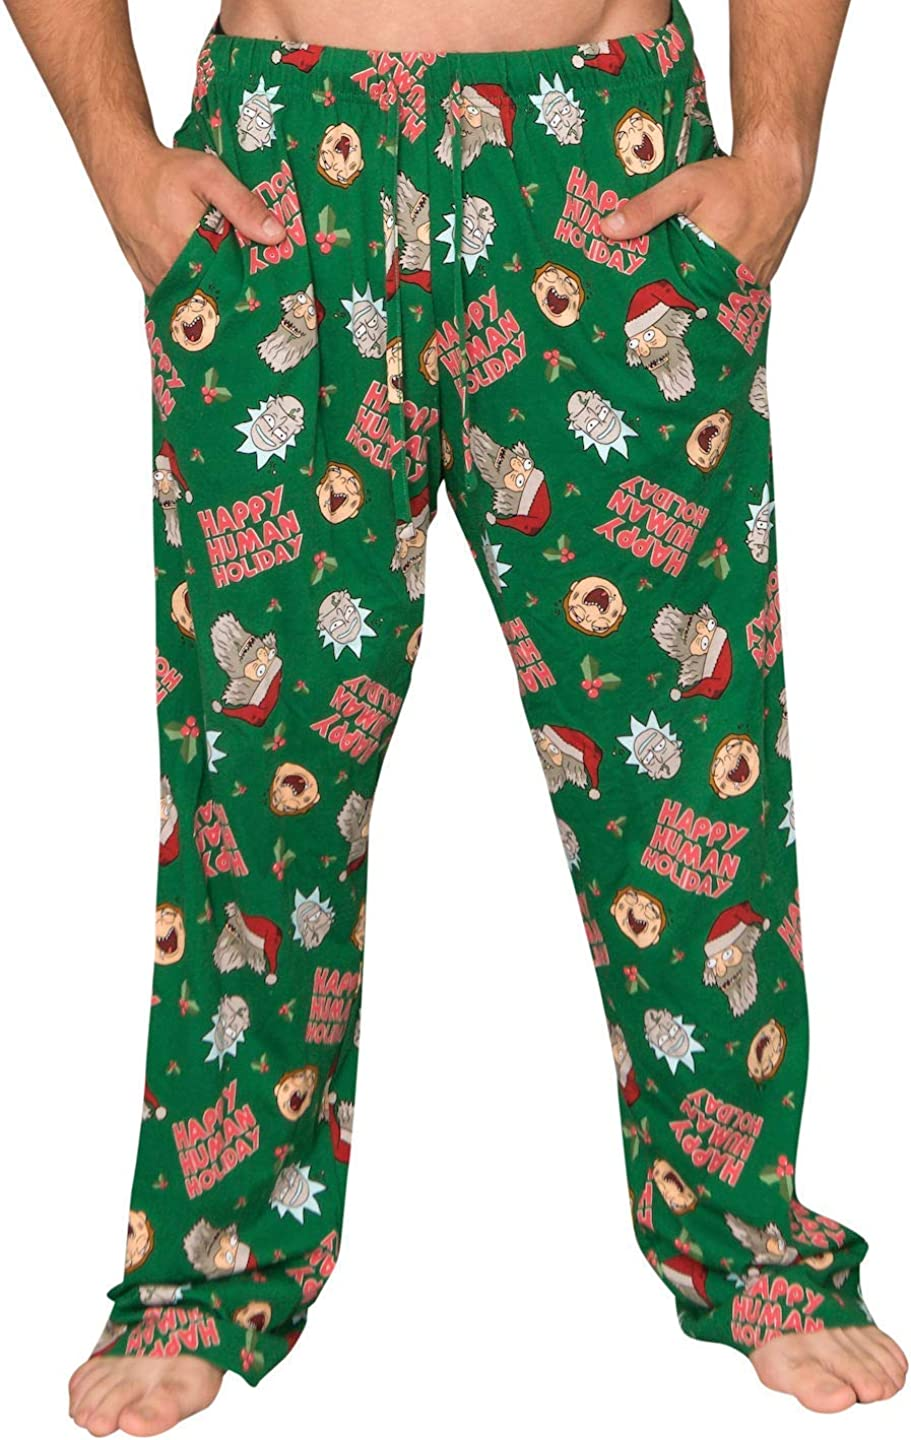 Underboss Rick and Morty Happy Human Holidays Green Lounge Pants